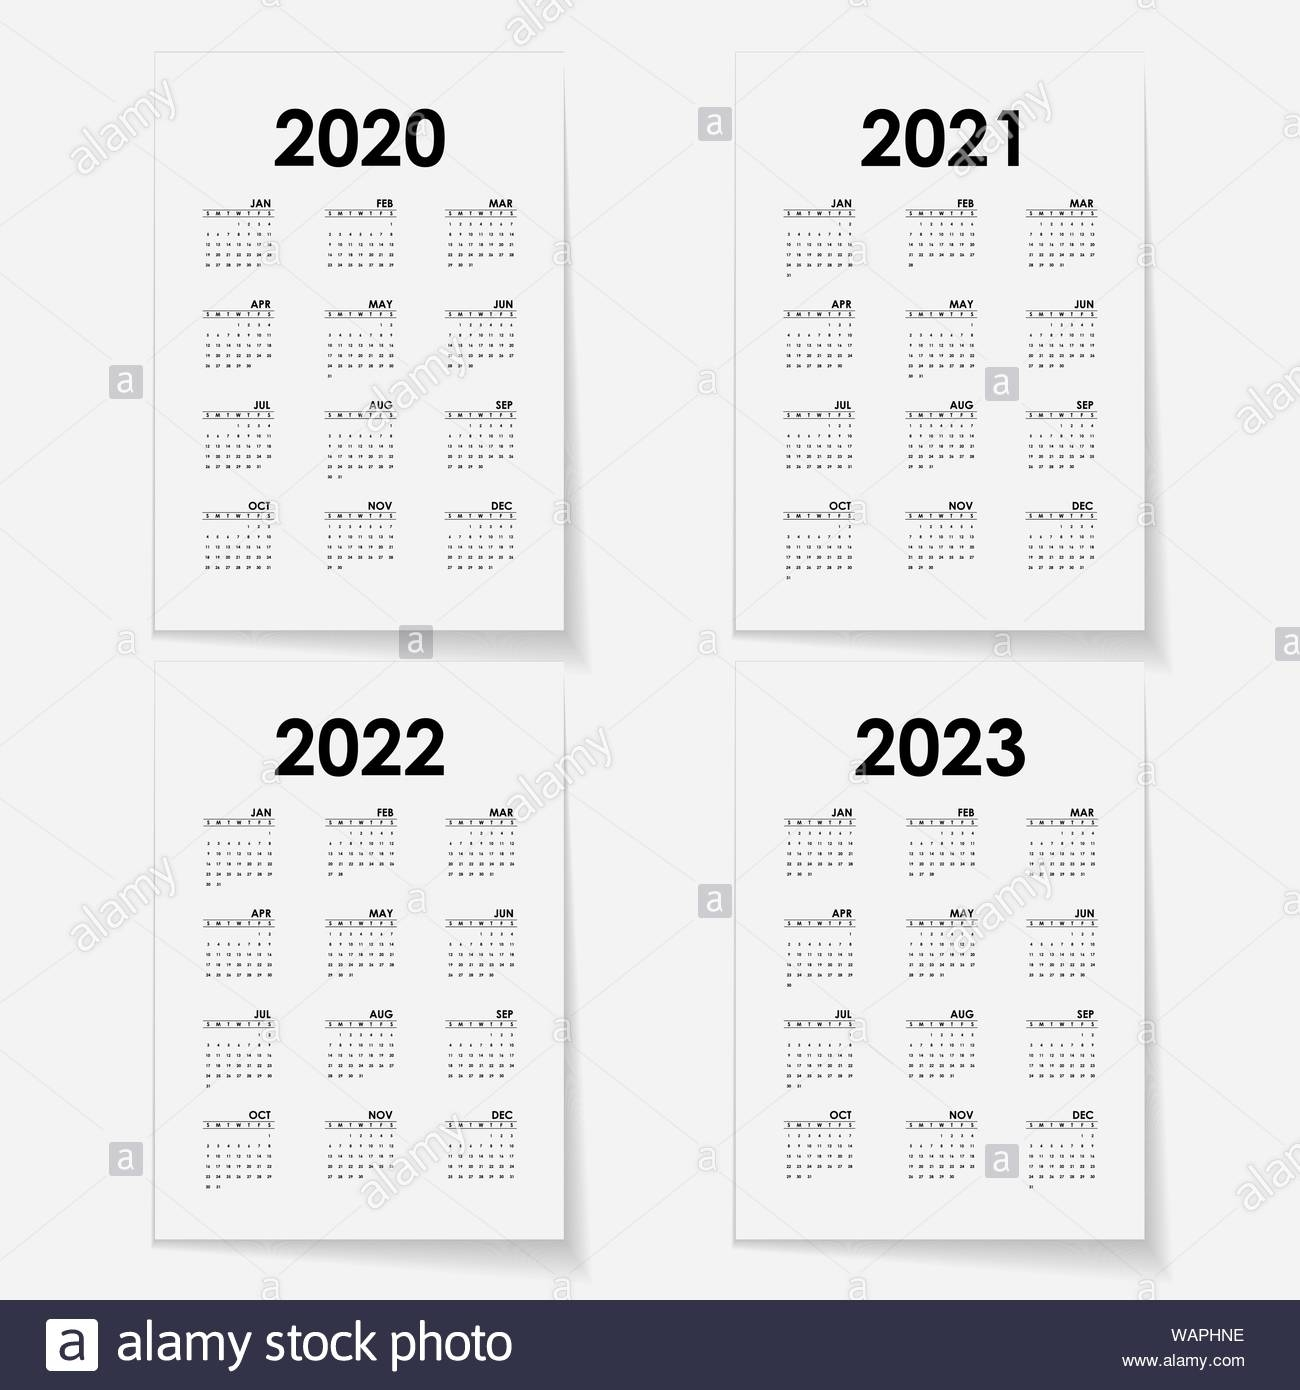 Calendar 2020, 2021,2022 And 2023 Calendar Template.calendar for Yearly 2019 2020 2021 2022 2023